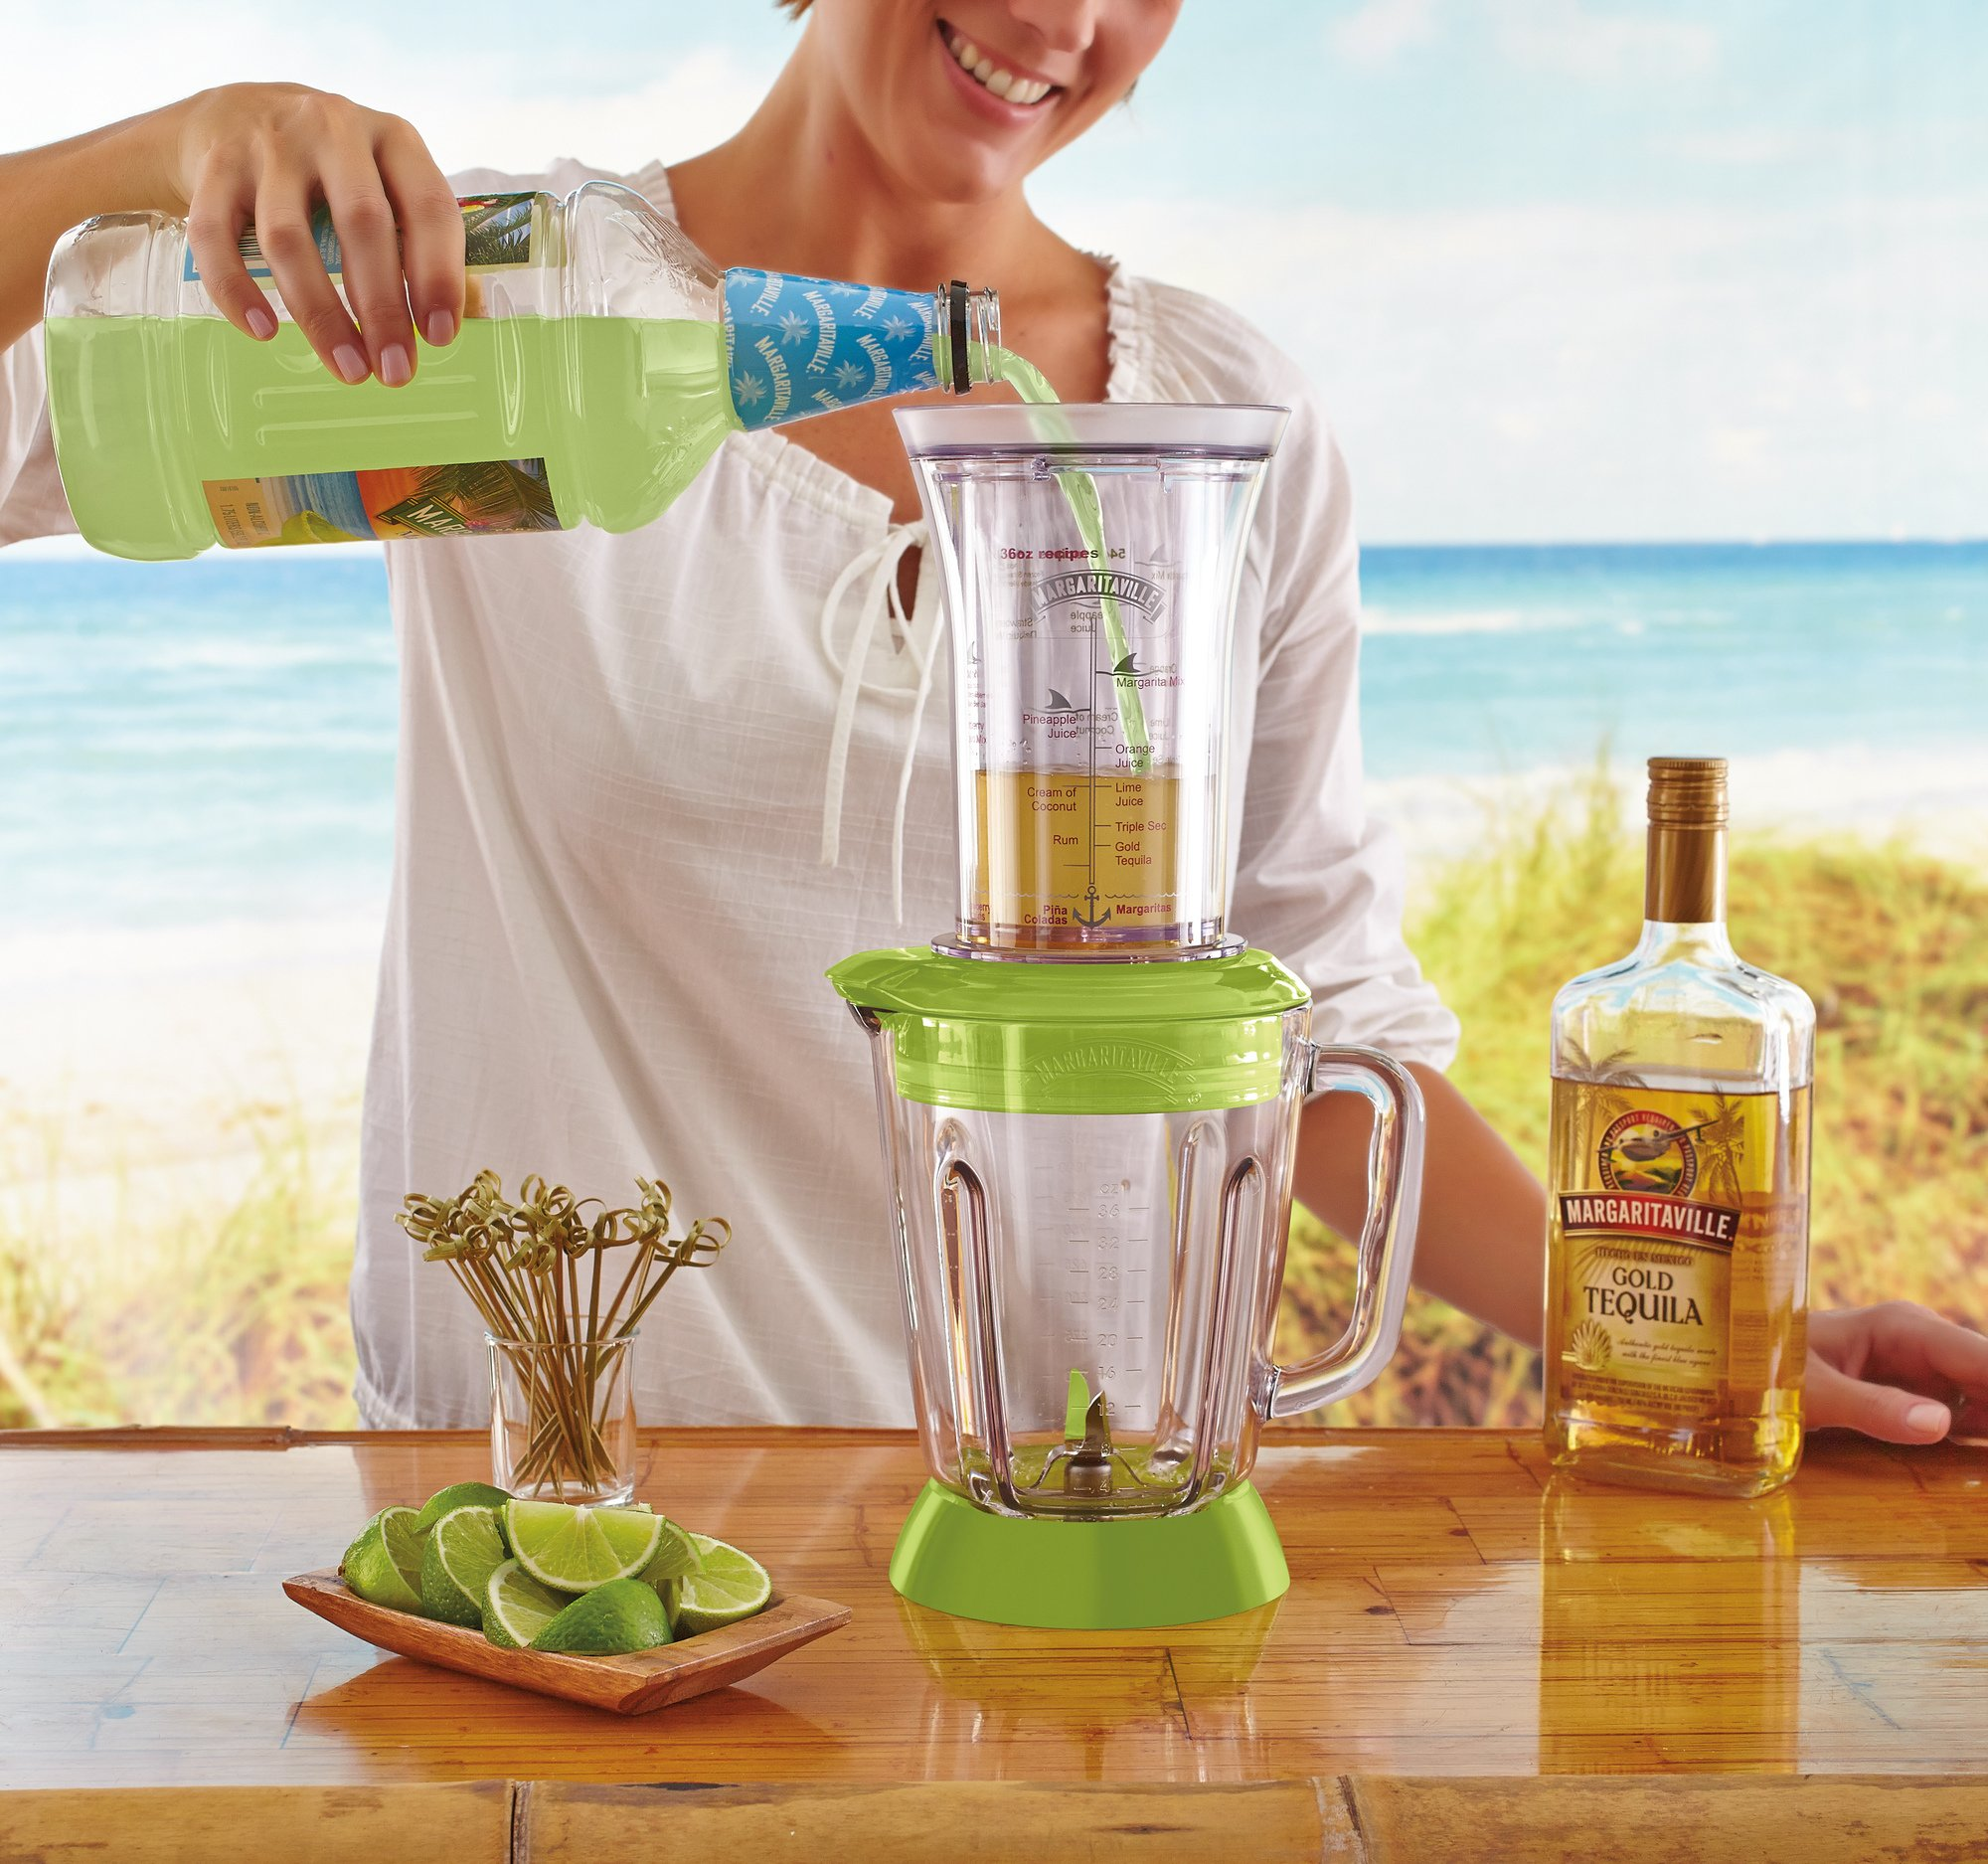 Margaritaville Bahamas Frozen Concoction Maker with No Brainer Mixer, DM0700 by Margaritaville (Image #4)